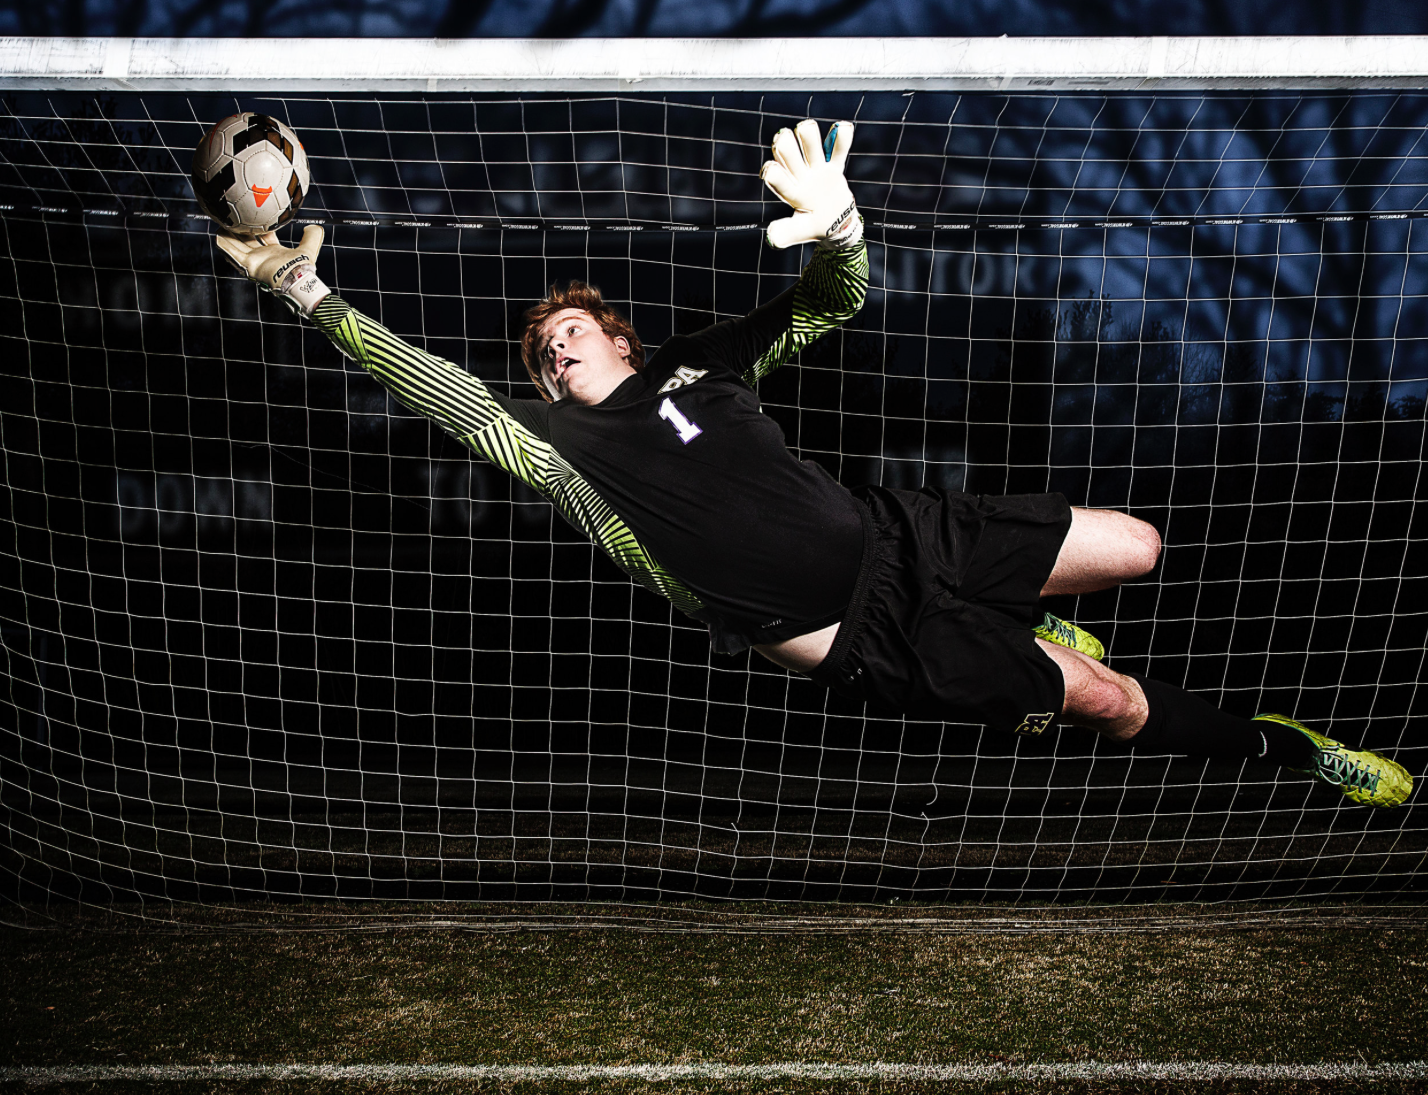 The goalkeeper was shot inside and landed on a high jump pad and was later inserted into the background image.  Asking a goalkeeper make this save multiple times (or even once) for a photo shoot is never an option due to the risk of injury.   The safety of the athlete comes before everything so if you cannot figure out how to do something with that as the priority, you cannot do the shoot.